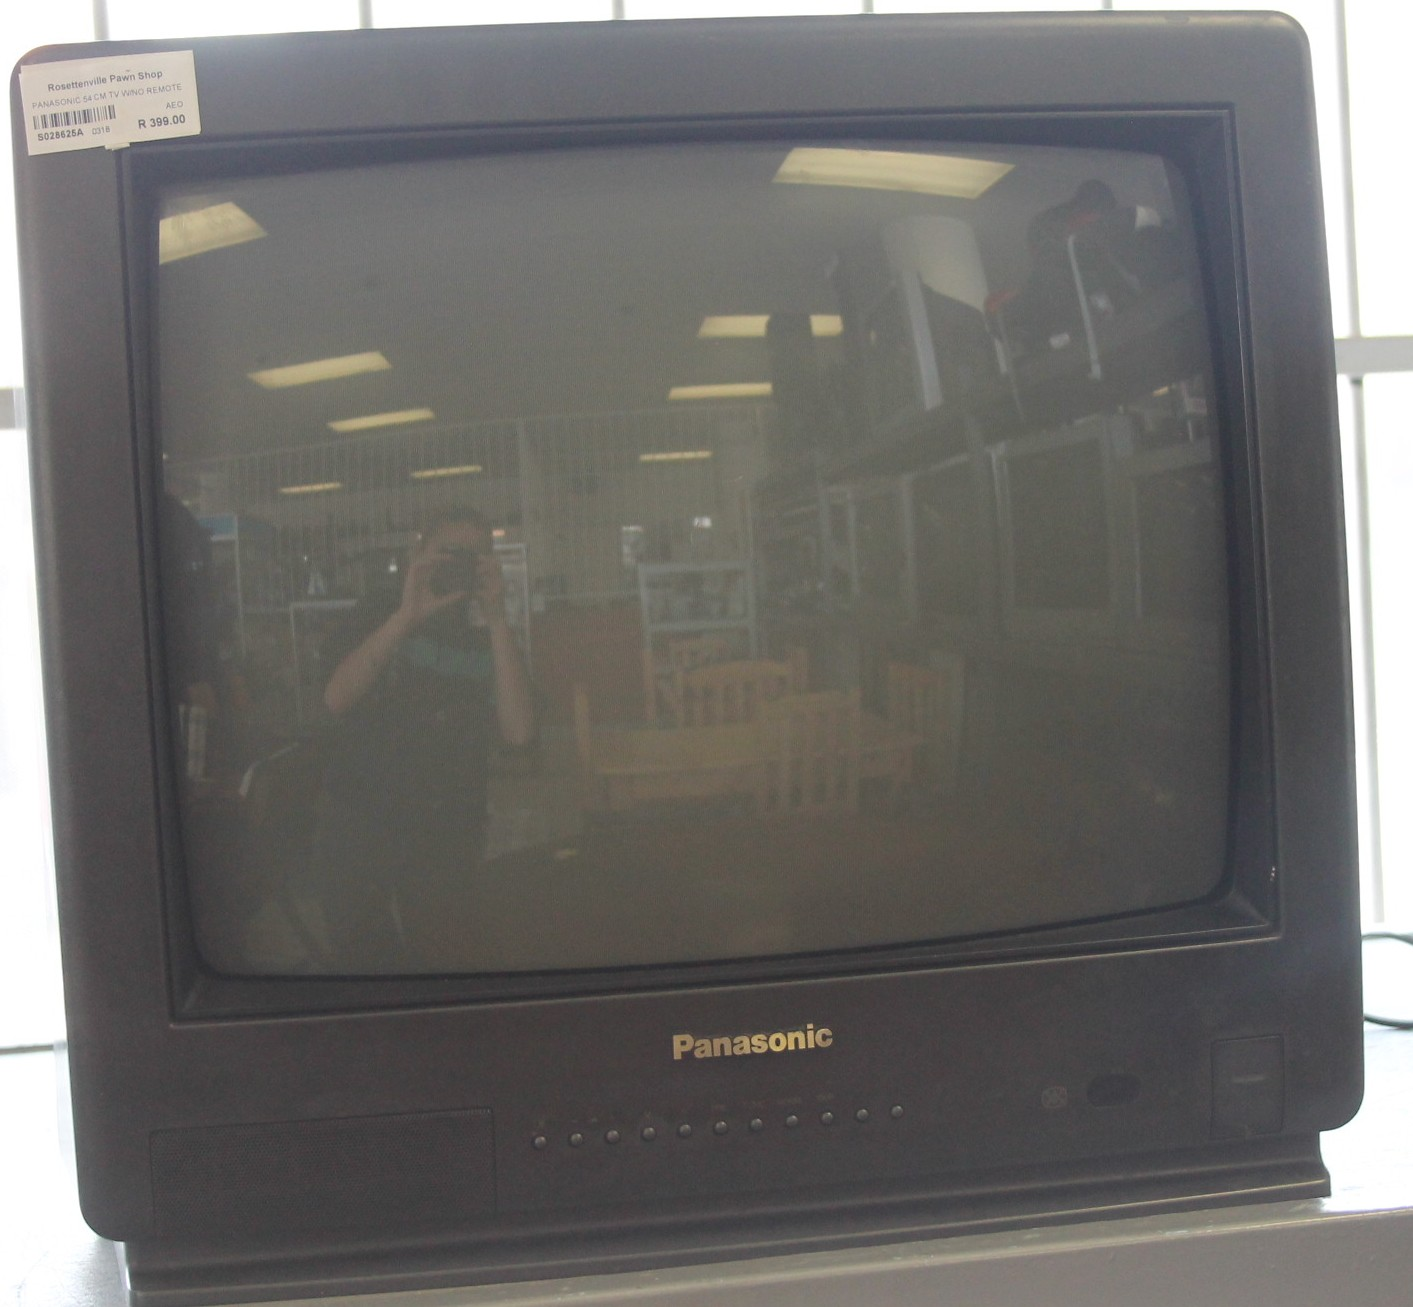 Panasonic 54cm tv S028625a #Rosettenvillepawnshop